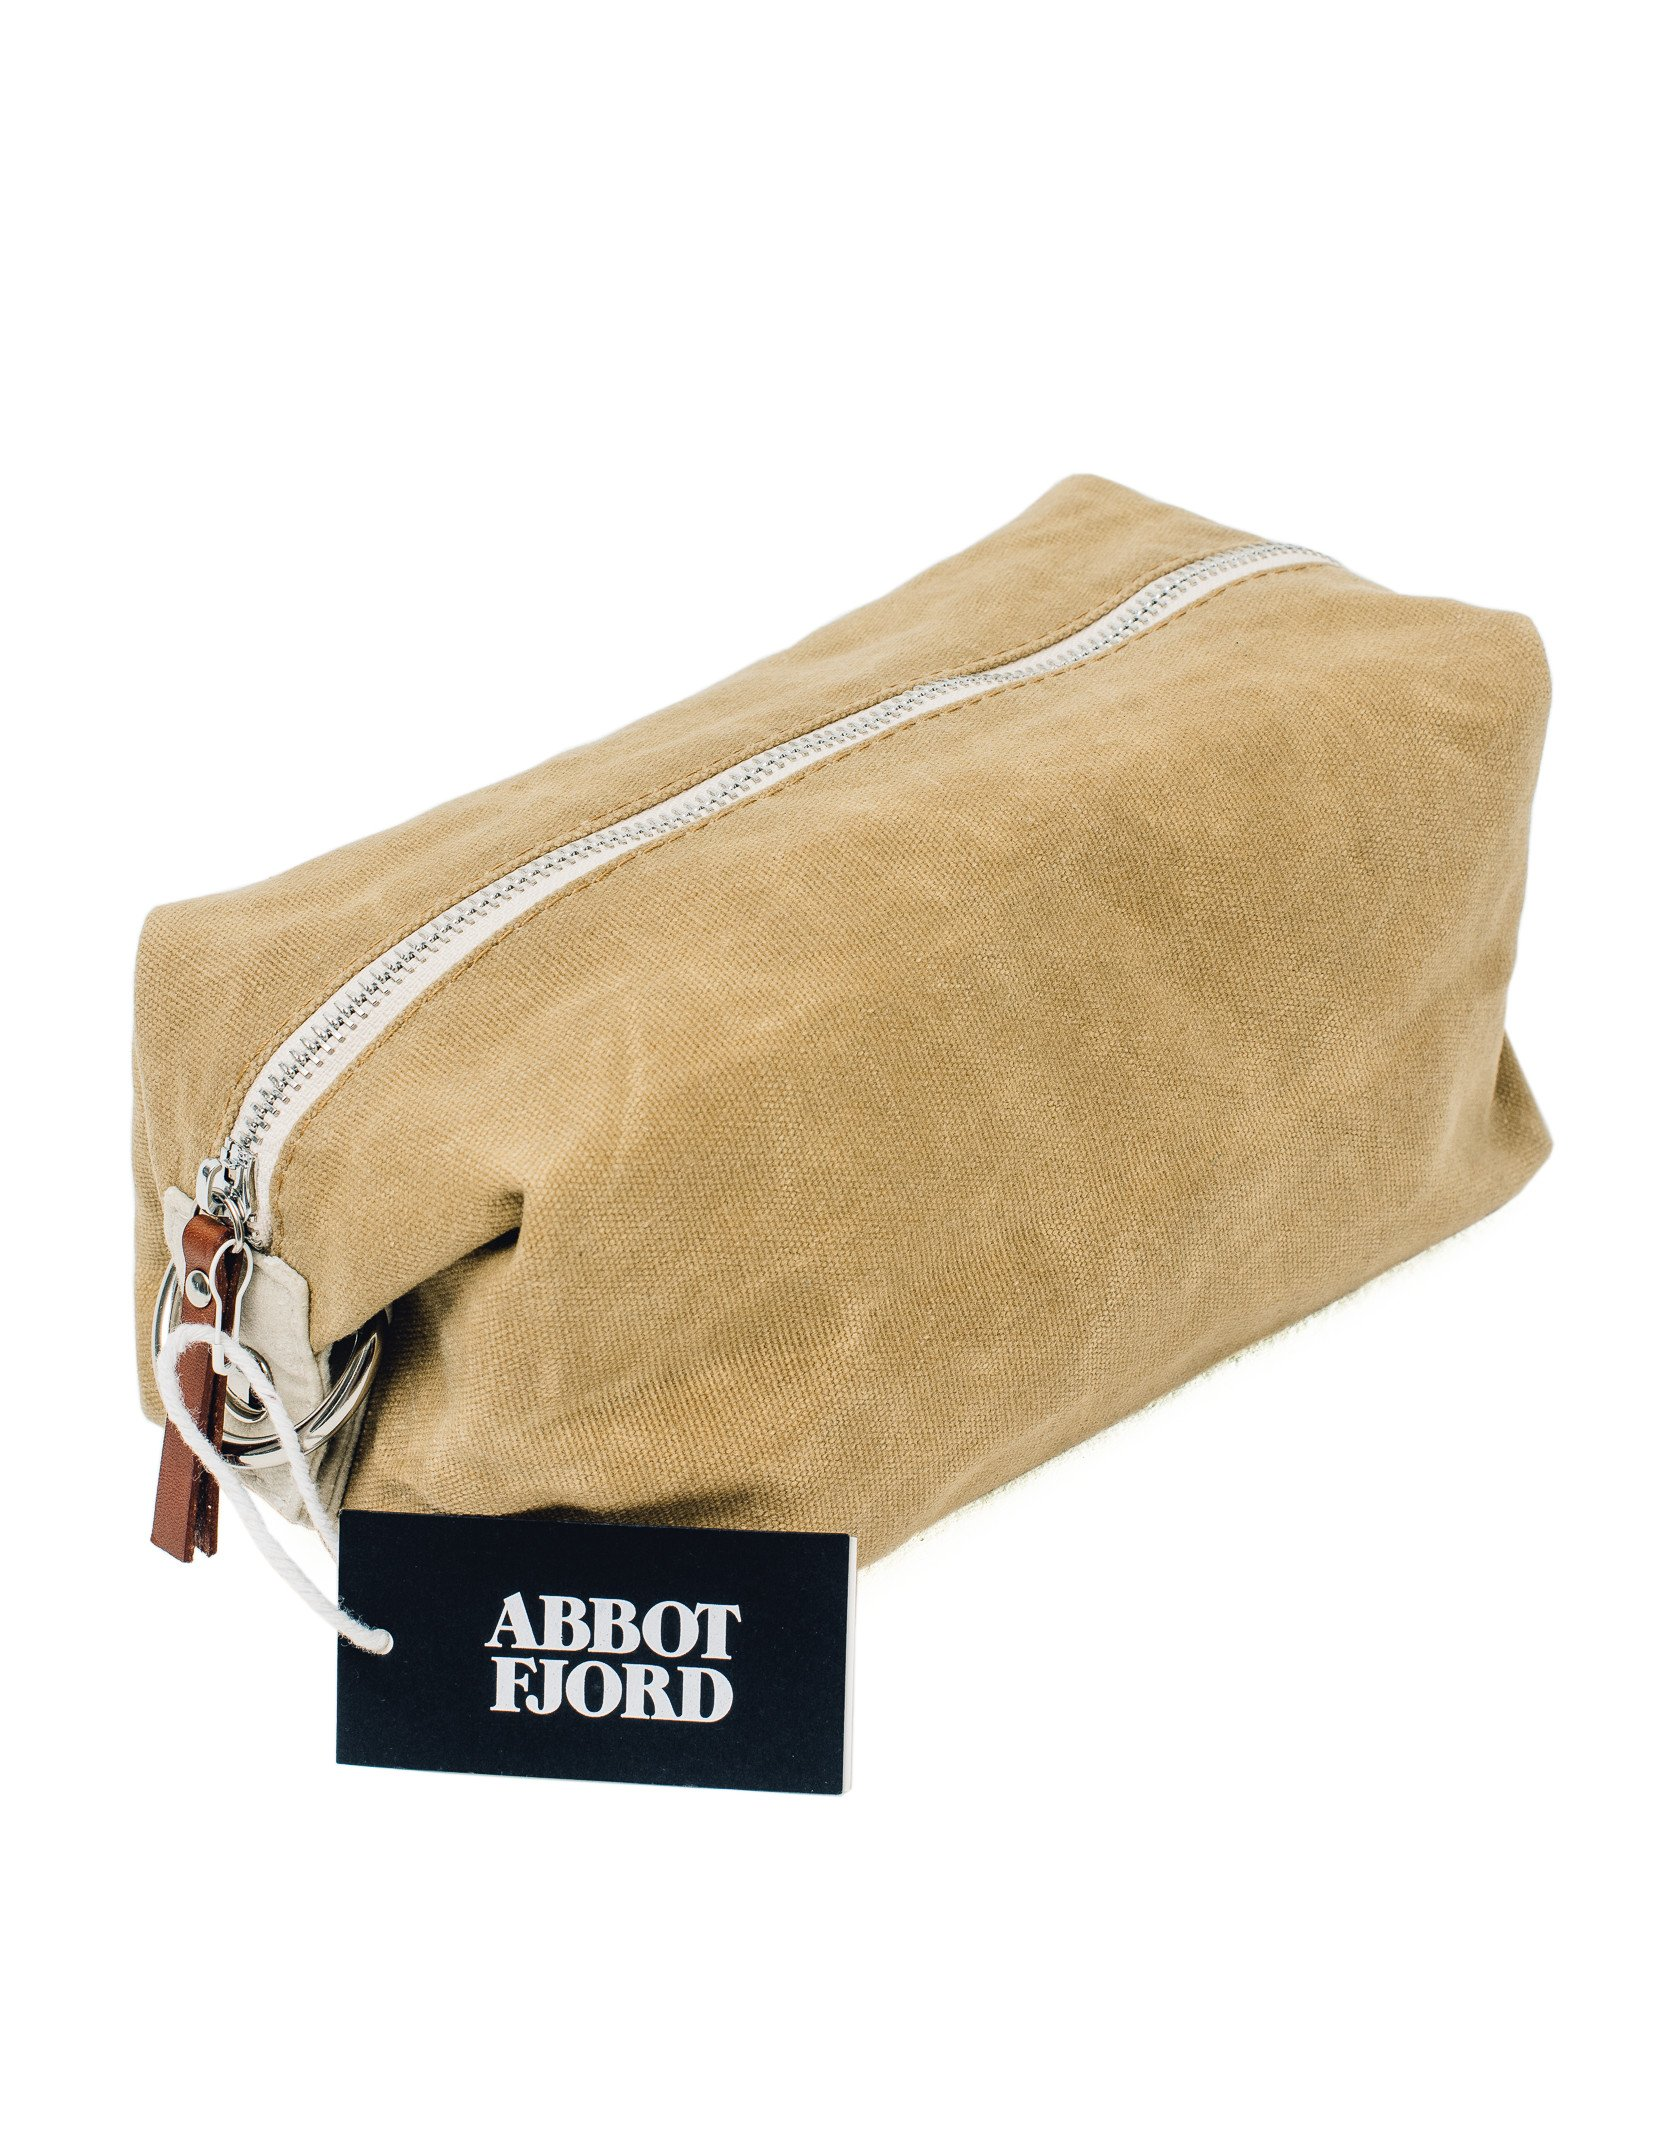 3d27f5813f Amazon.com   Dopp Kit by Abbot Fjord - Mens and Womens Water-Resistant Waxed  Canvas Toiletry Bag for Travel - Durable and Adjustable (Tan)   Beauty